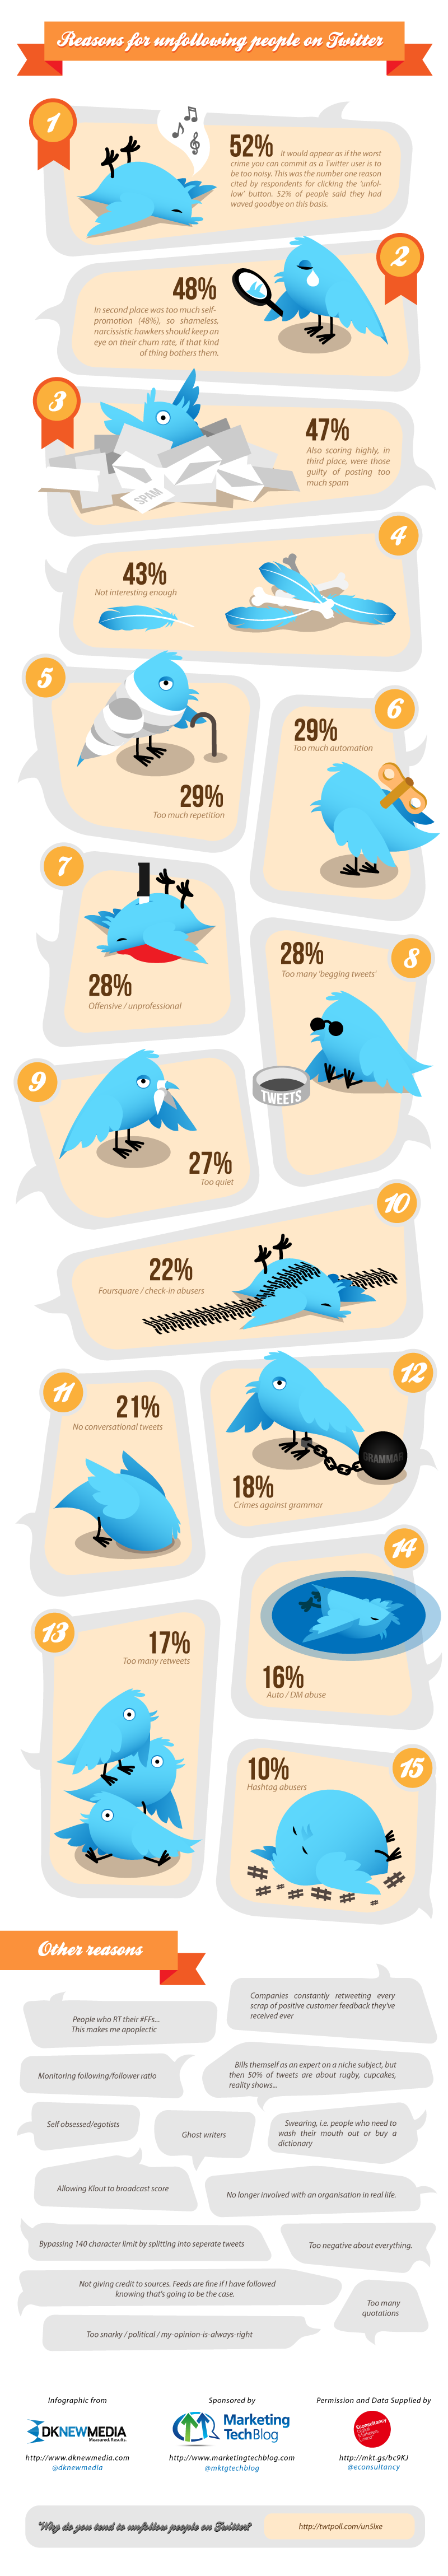 Fifteen Reasons Why You've Just Been Unfollowed On Twitter #Infographic